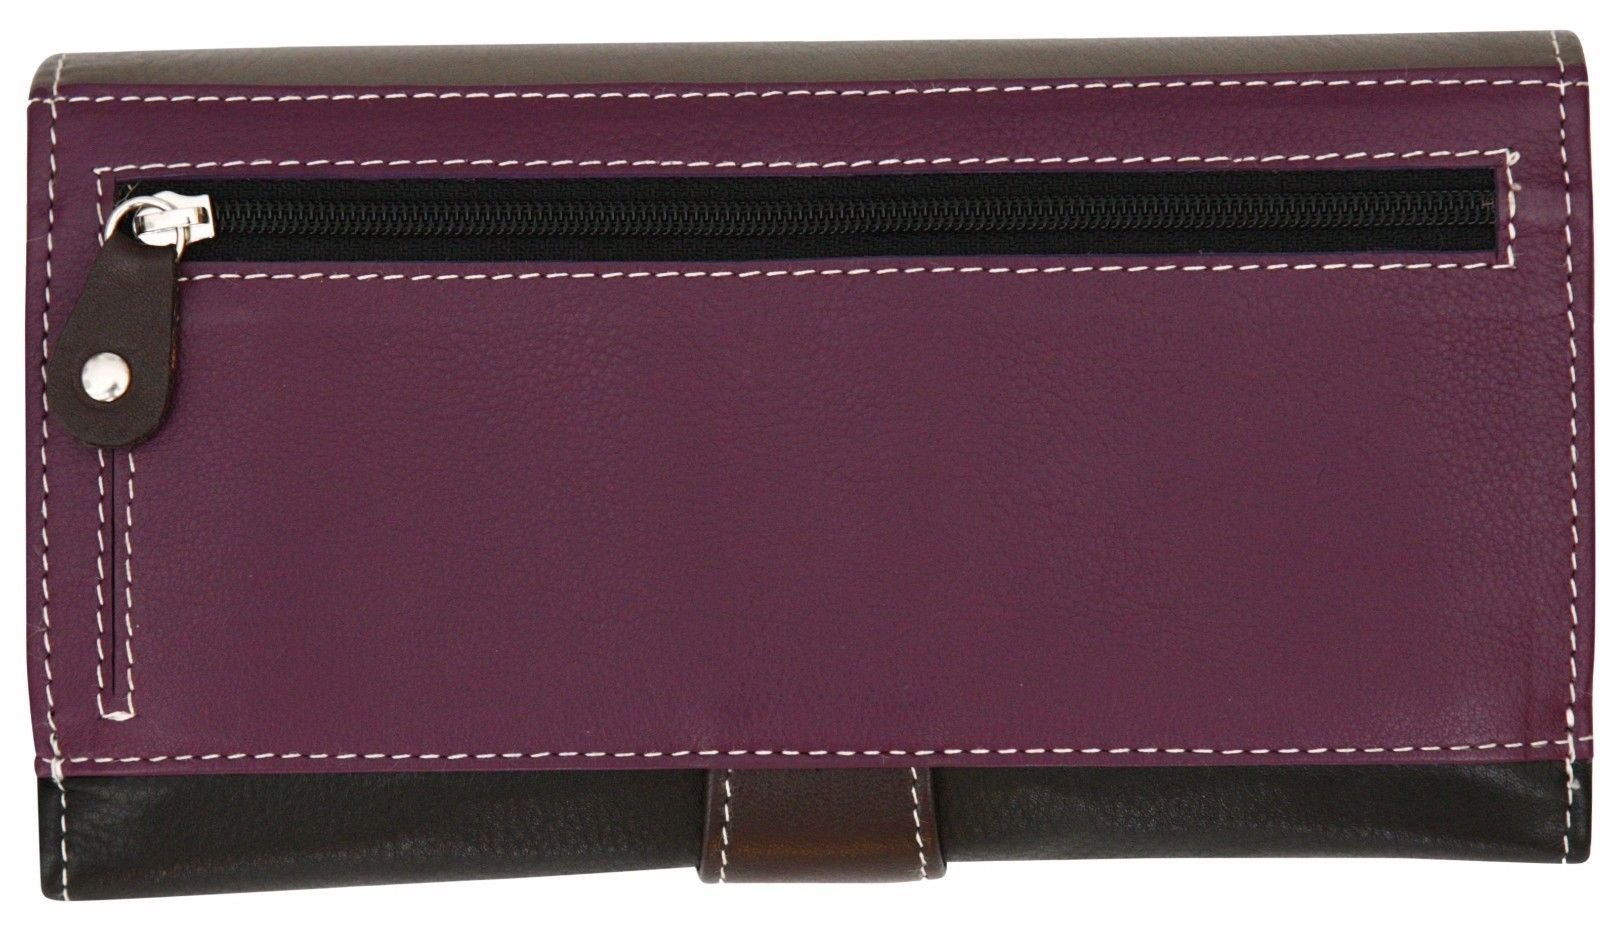 Felda-RFID-Ladies-Leather-Soft-Wallet-Large-Capacity-Purse-Womens-Multi-24-Card miniatuur 38